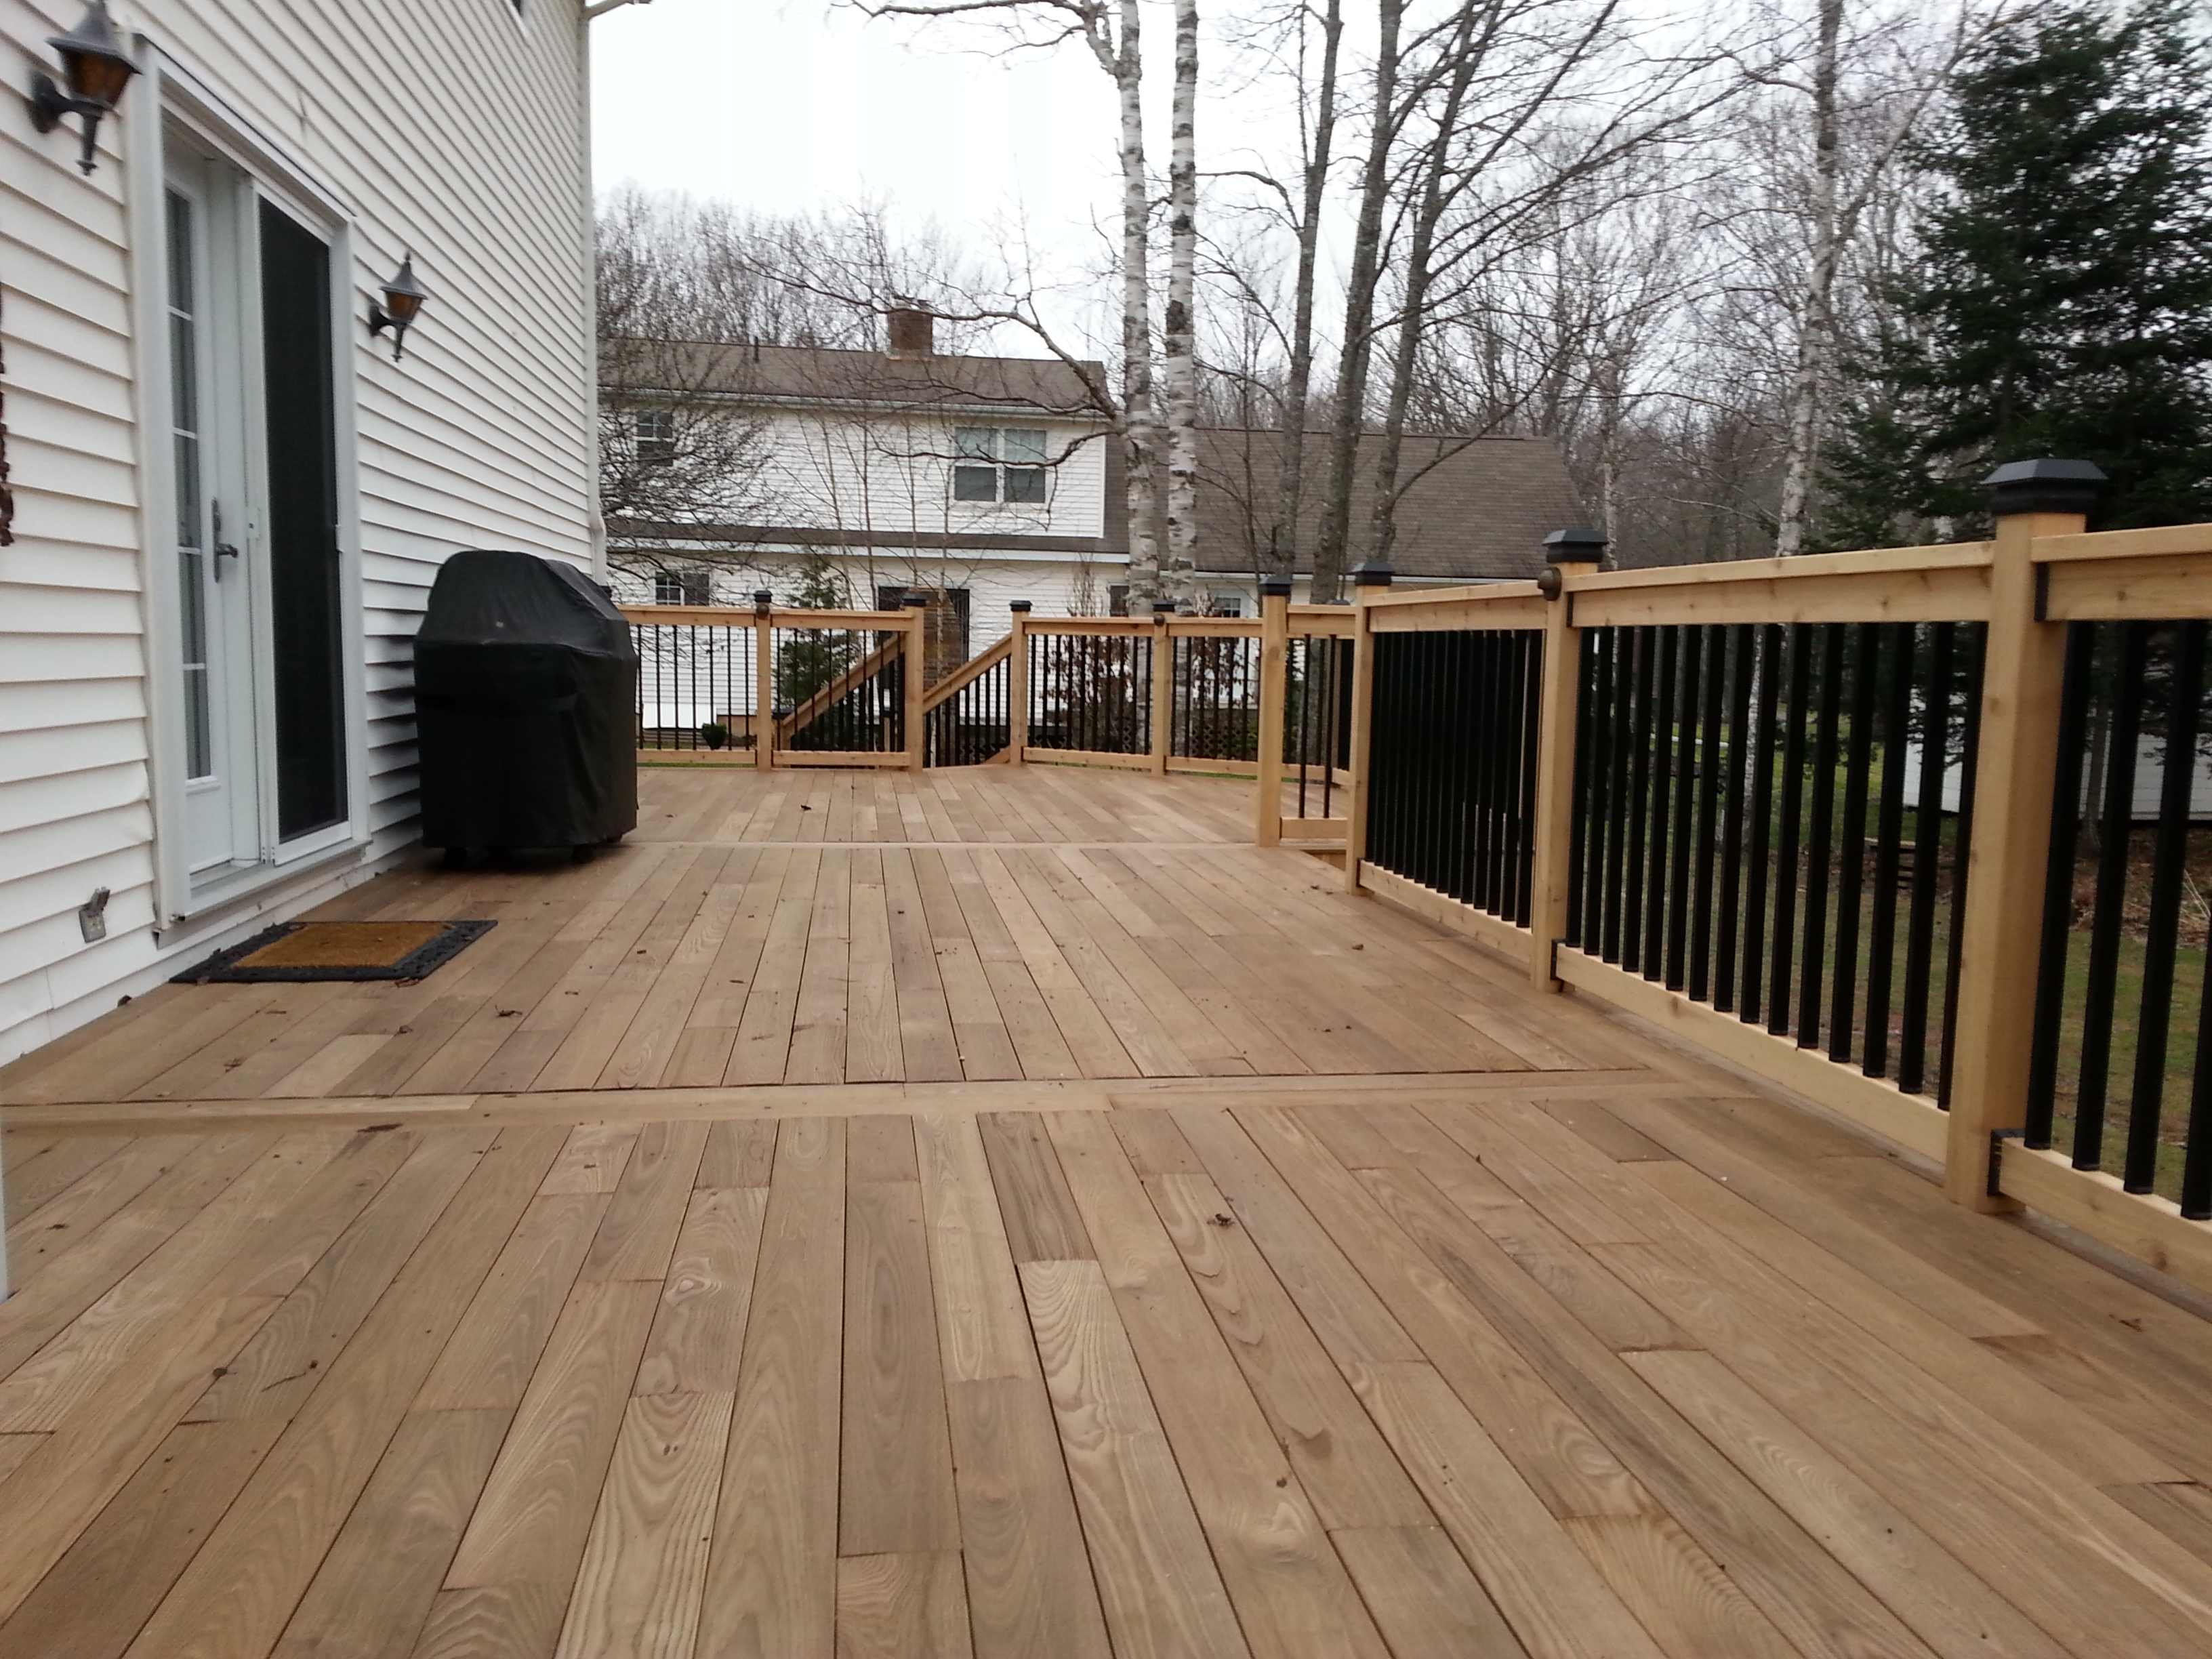 Ash Snap-to-it decking